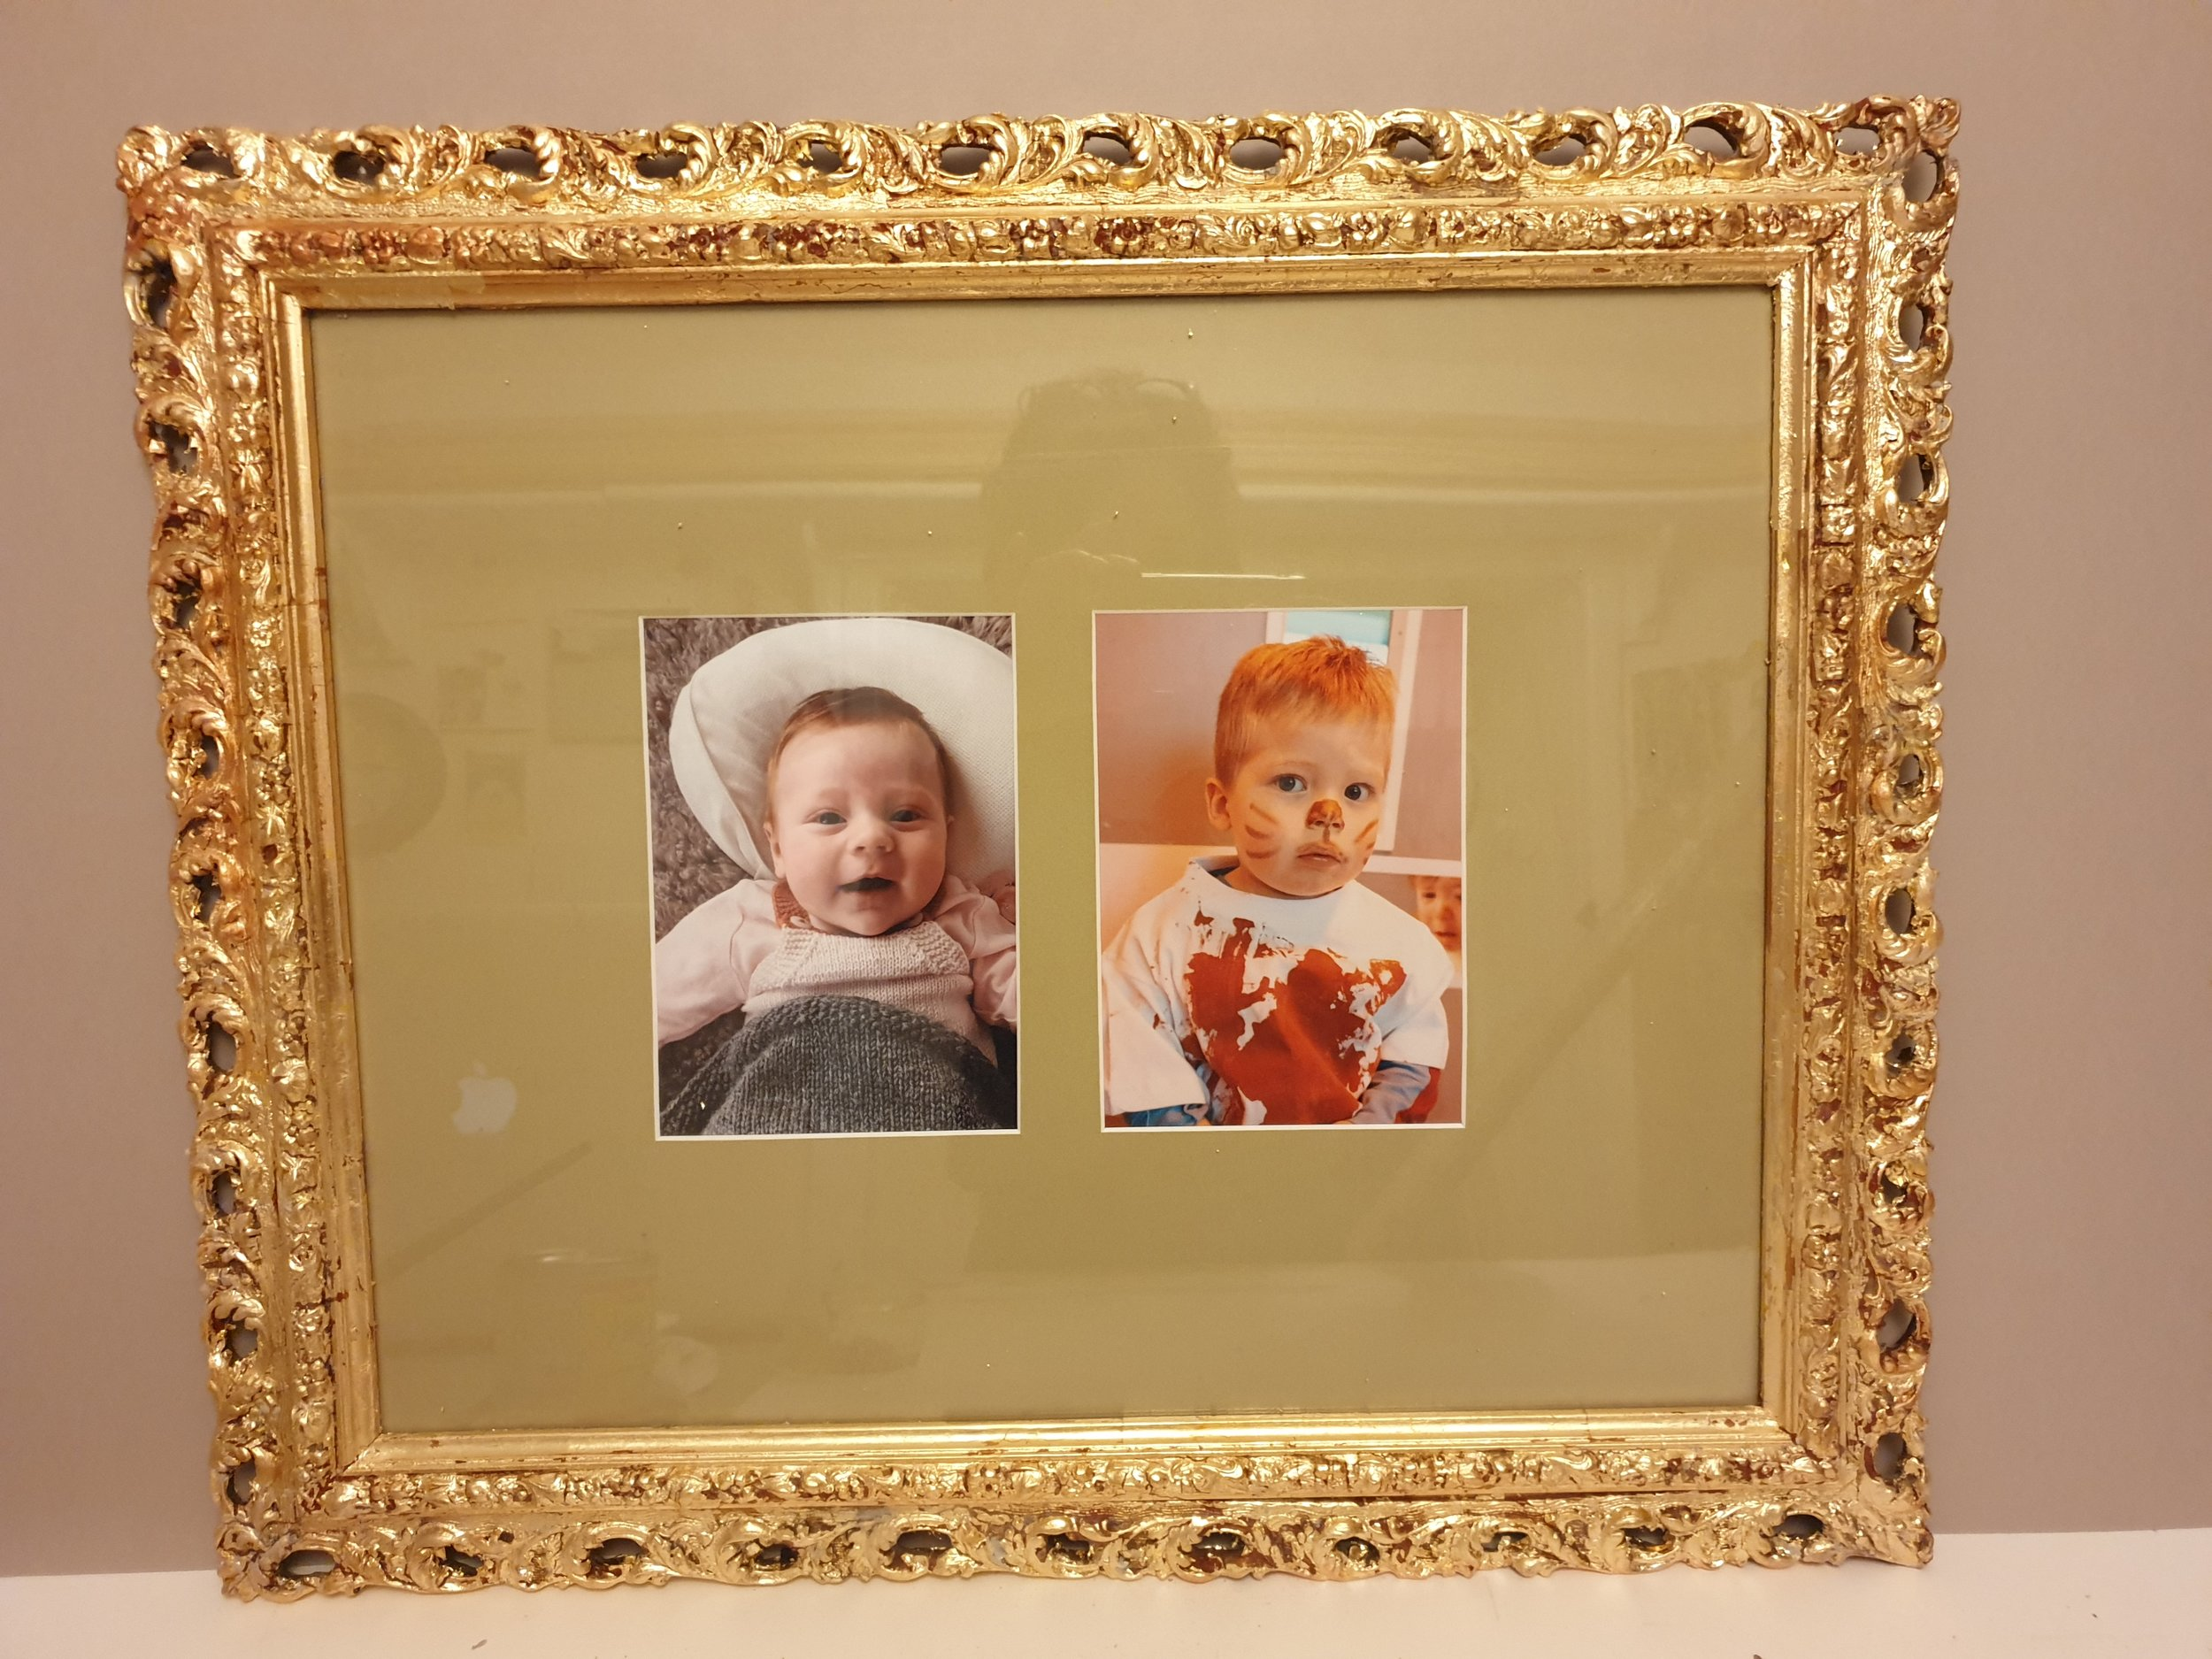 This piece is an example of an original restored 18th Century frame which has been repaired and regilded to create a showy gift piece.